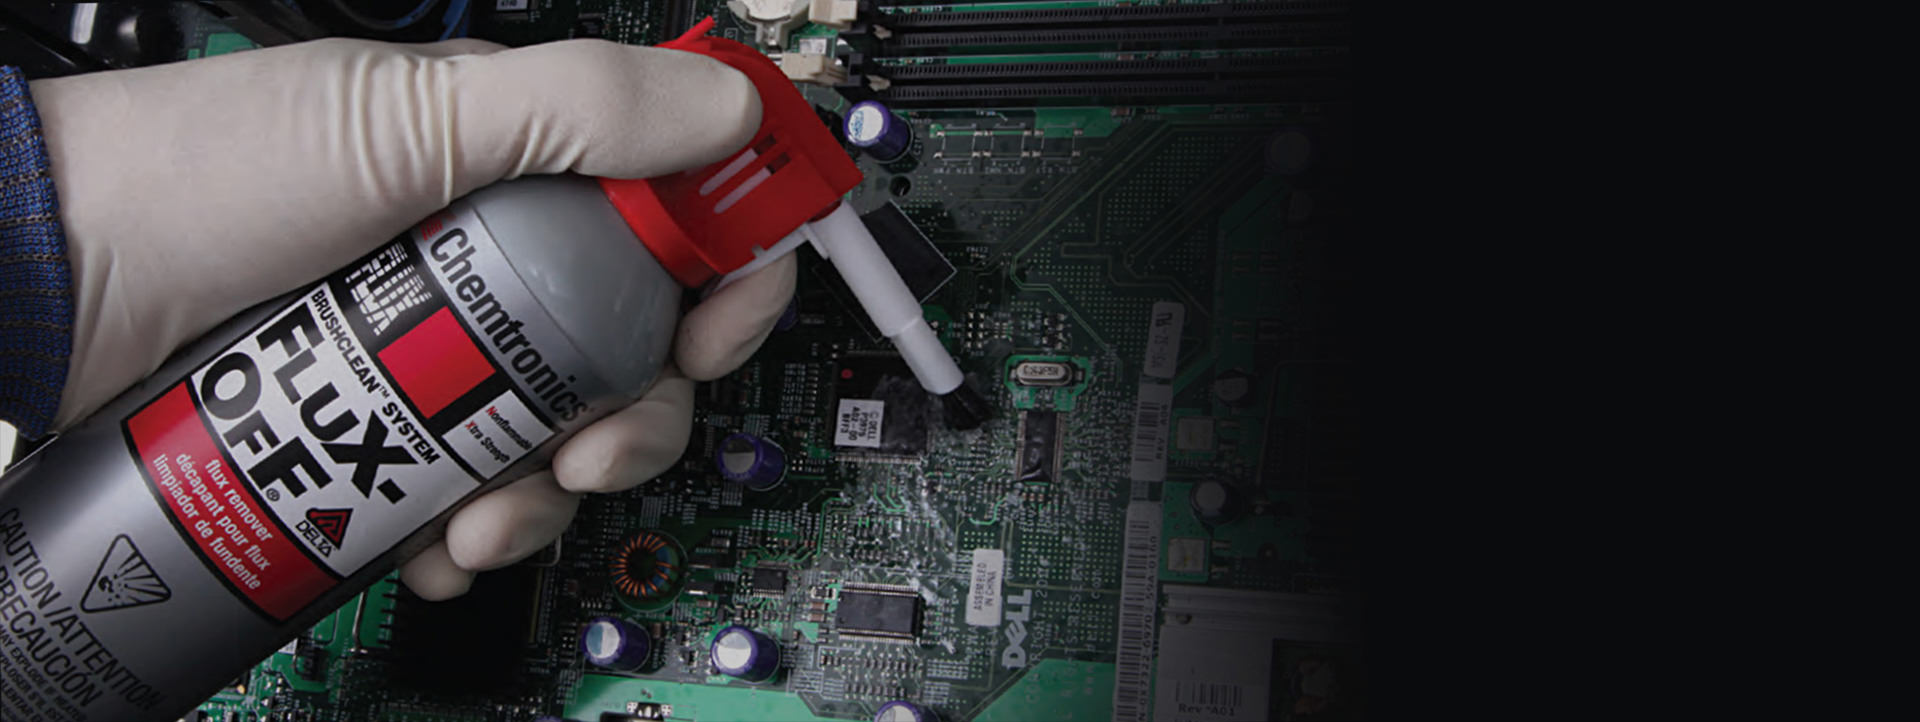 Chemtronics | Electronic Maintenance and Repair Supplies